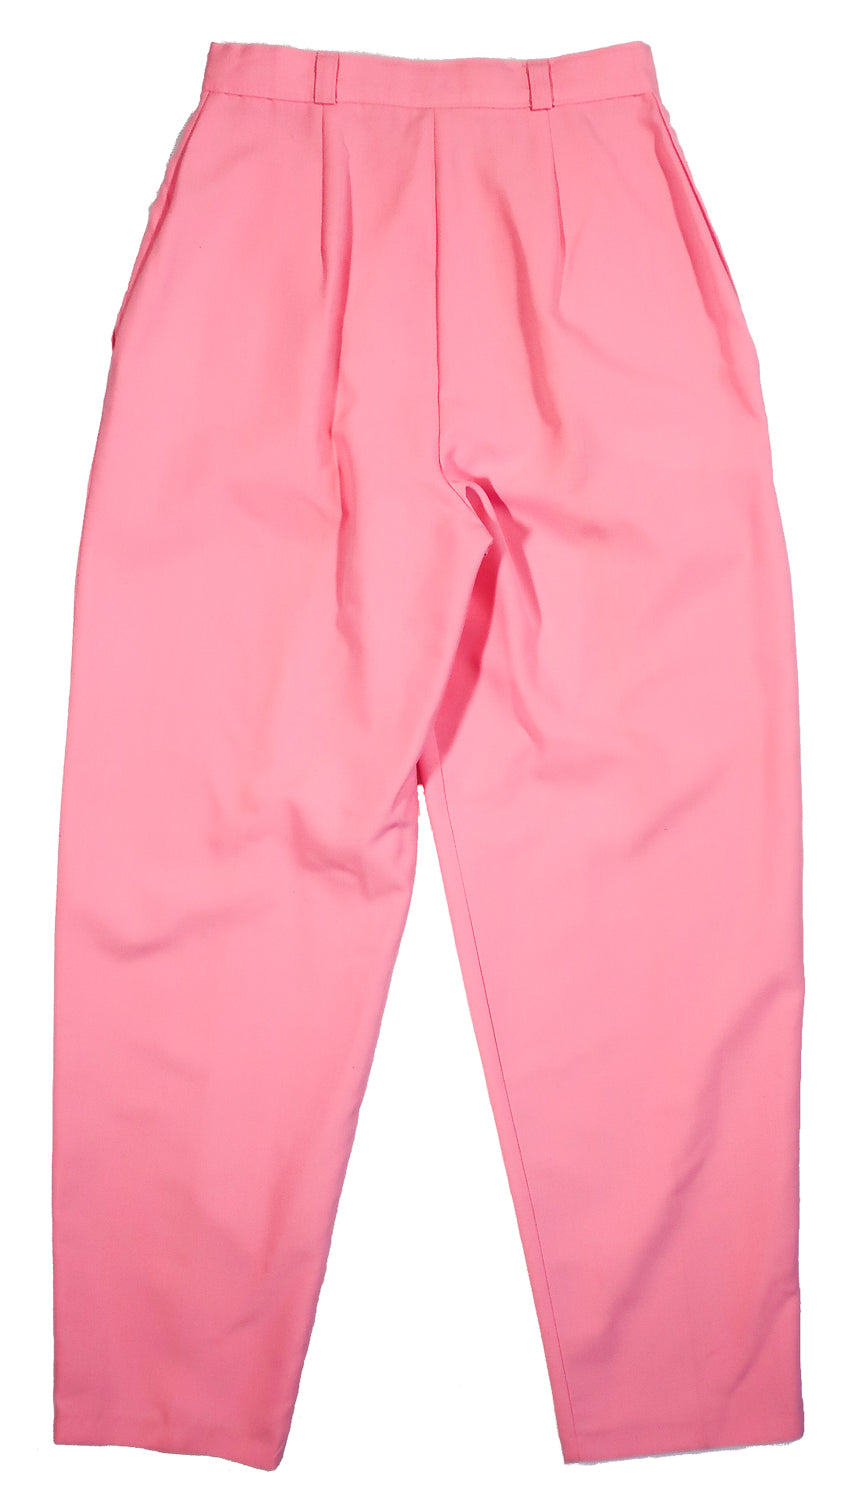 "Second Room Vintage Clothing. These are the most perfect vintage trouser, with a high cinched waist, and the perfect pleating at the front! They are bubblegum pink, high rise pleated pants, with zipper fly and button closure, with two side pockets, belt loops, 13"" rise and 7"" ankle opening. Comes with a matching pink fabric belt, with gold buckle. Free North American shipping on all orders."